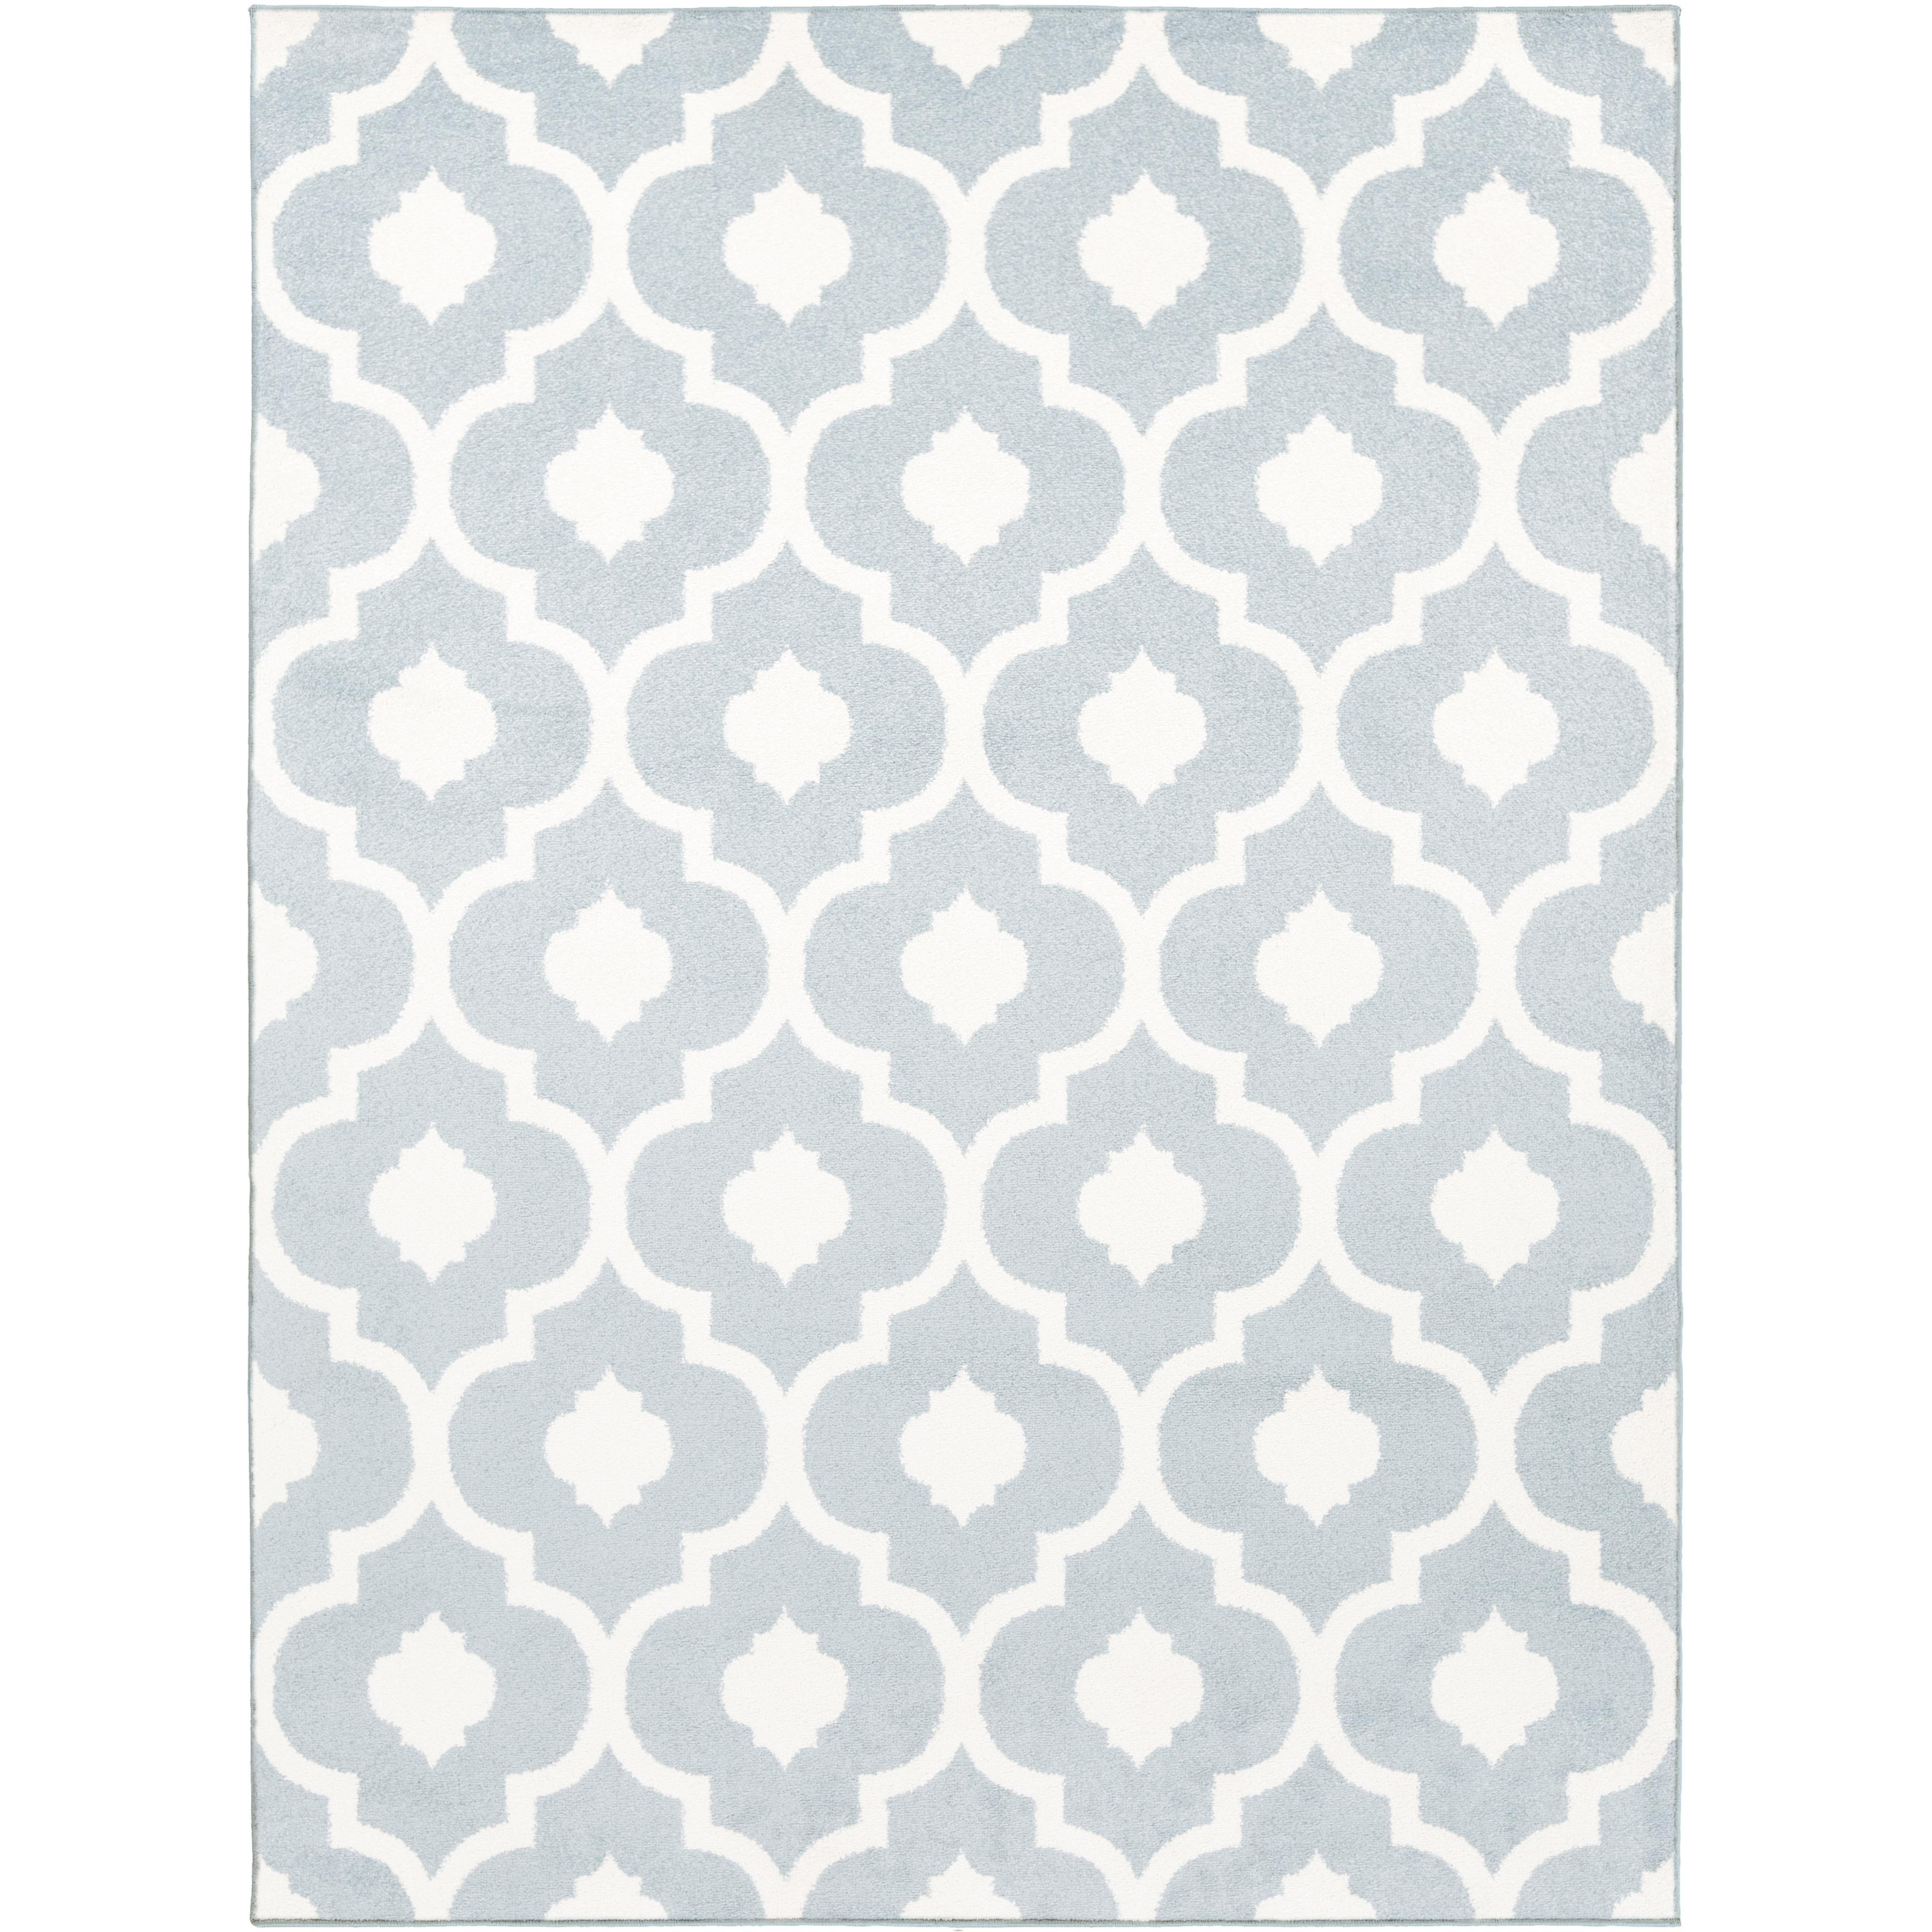 "Surya Rugs Horizon 3'3"" x 5' - Item Number: HRZ1098-335"